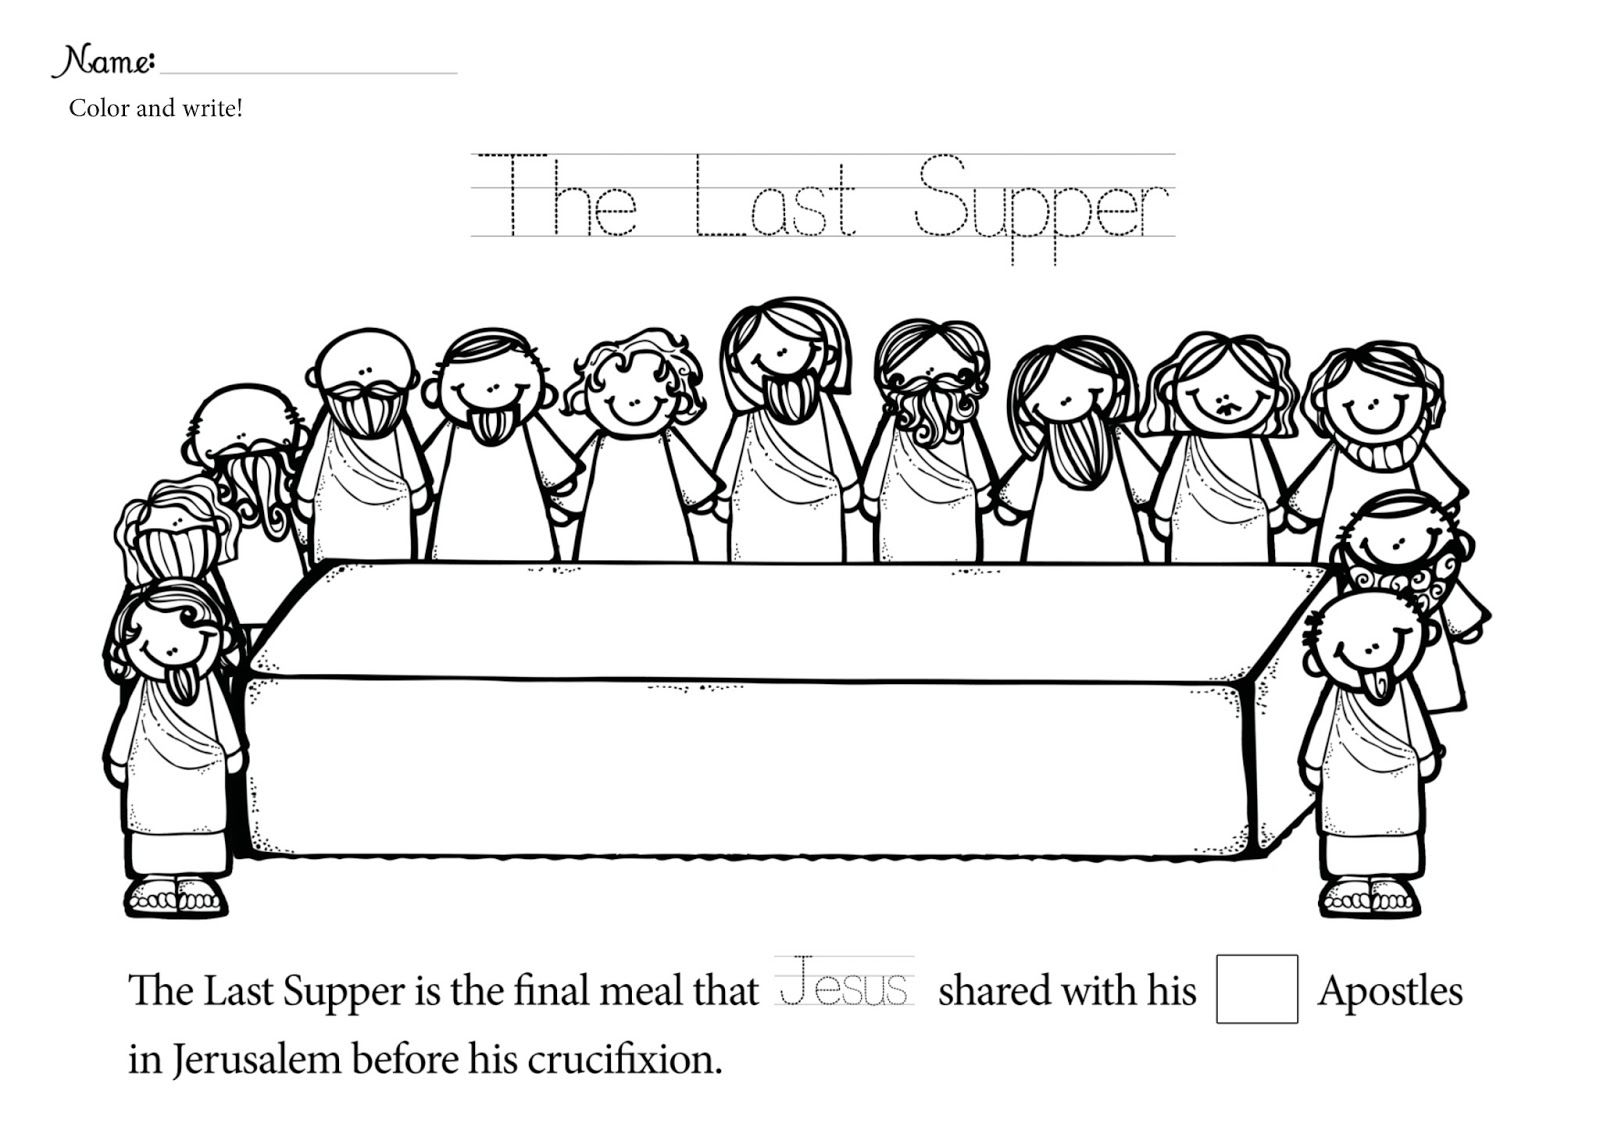 photograph relating to Last Supper Coloring Pages Printable called Correctly Concept The Remaining Evening meal Coloring Webpages Printable Of